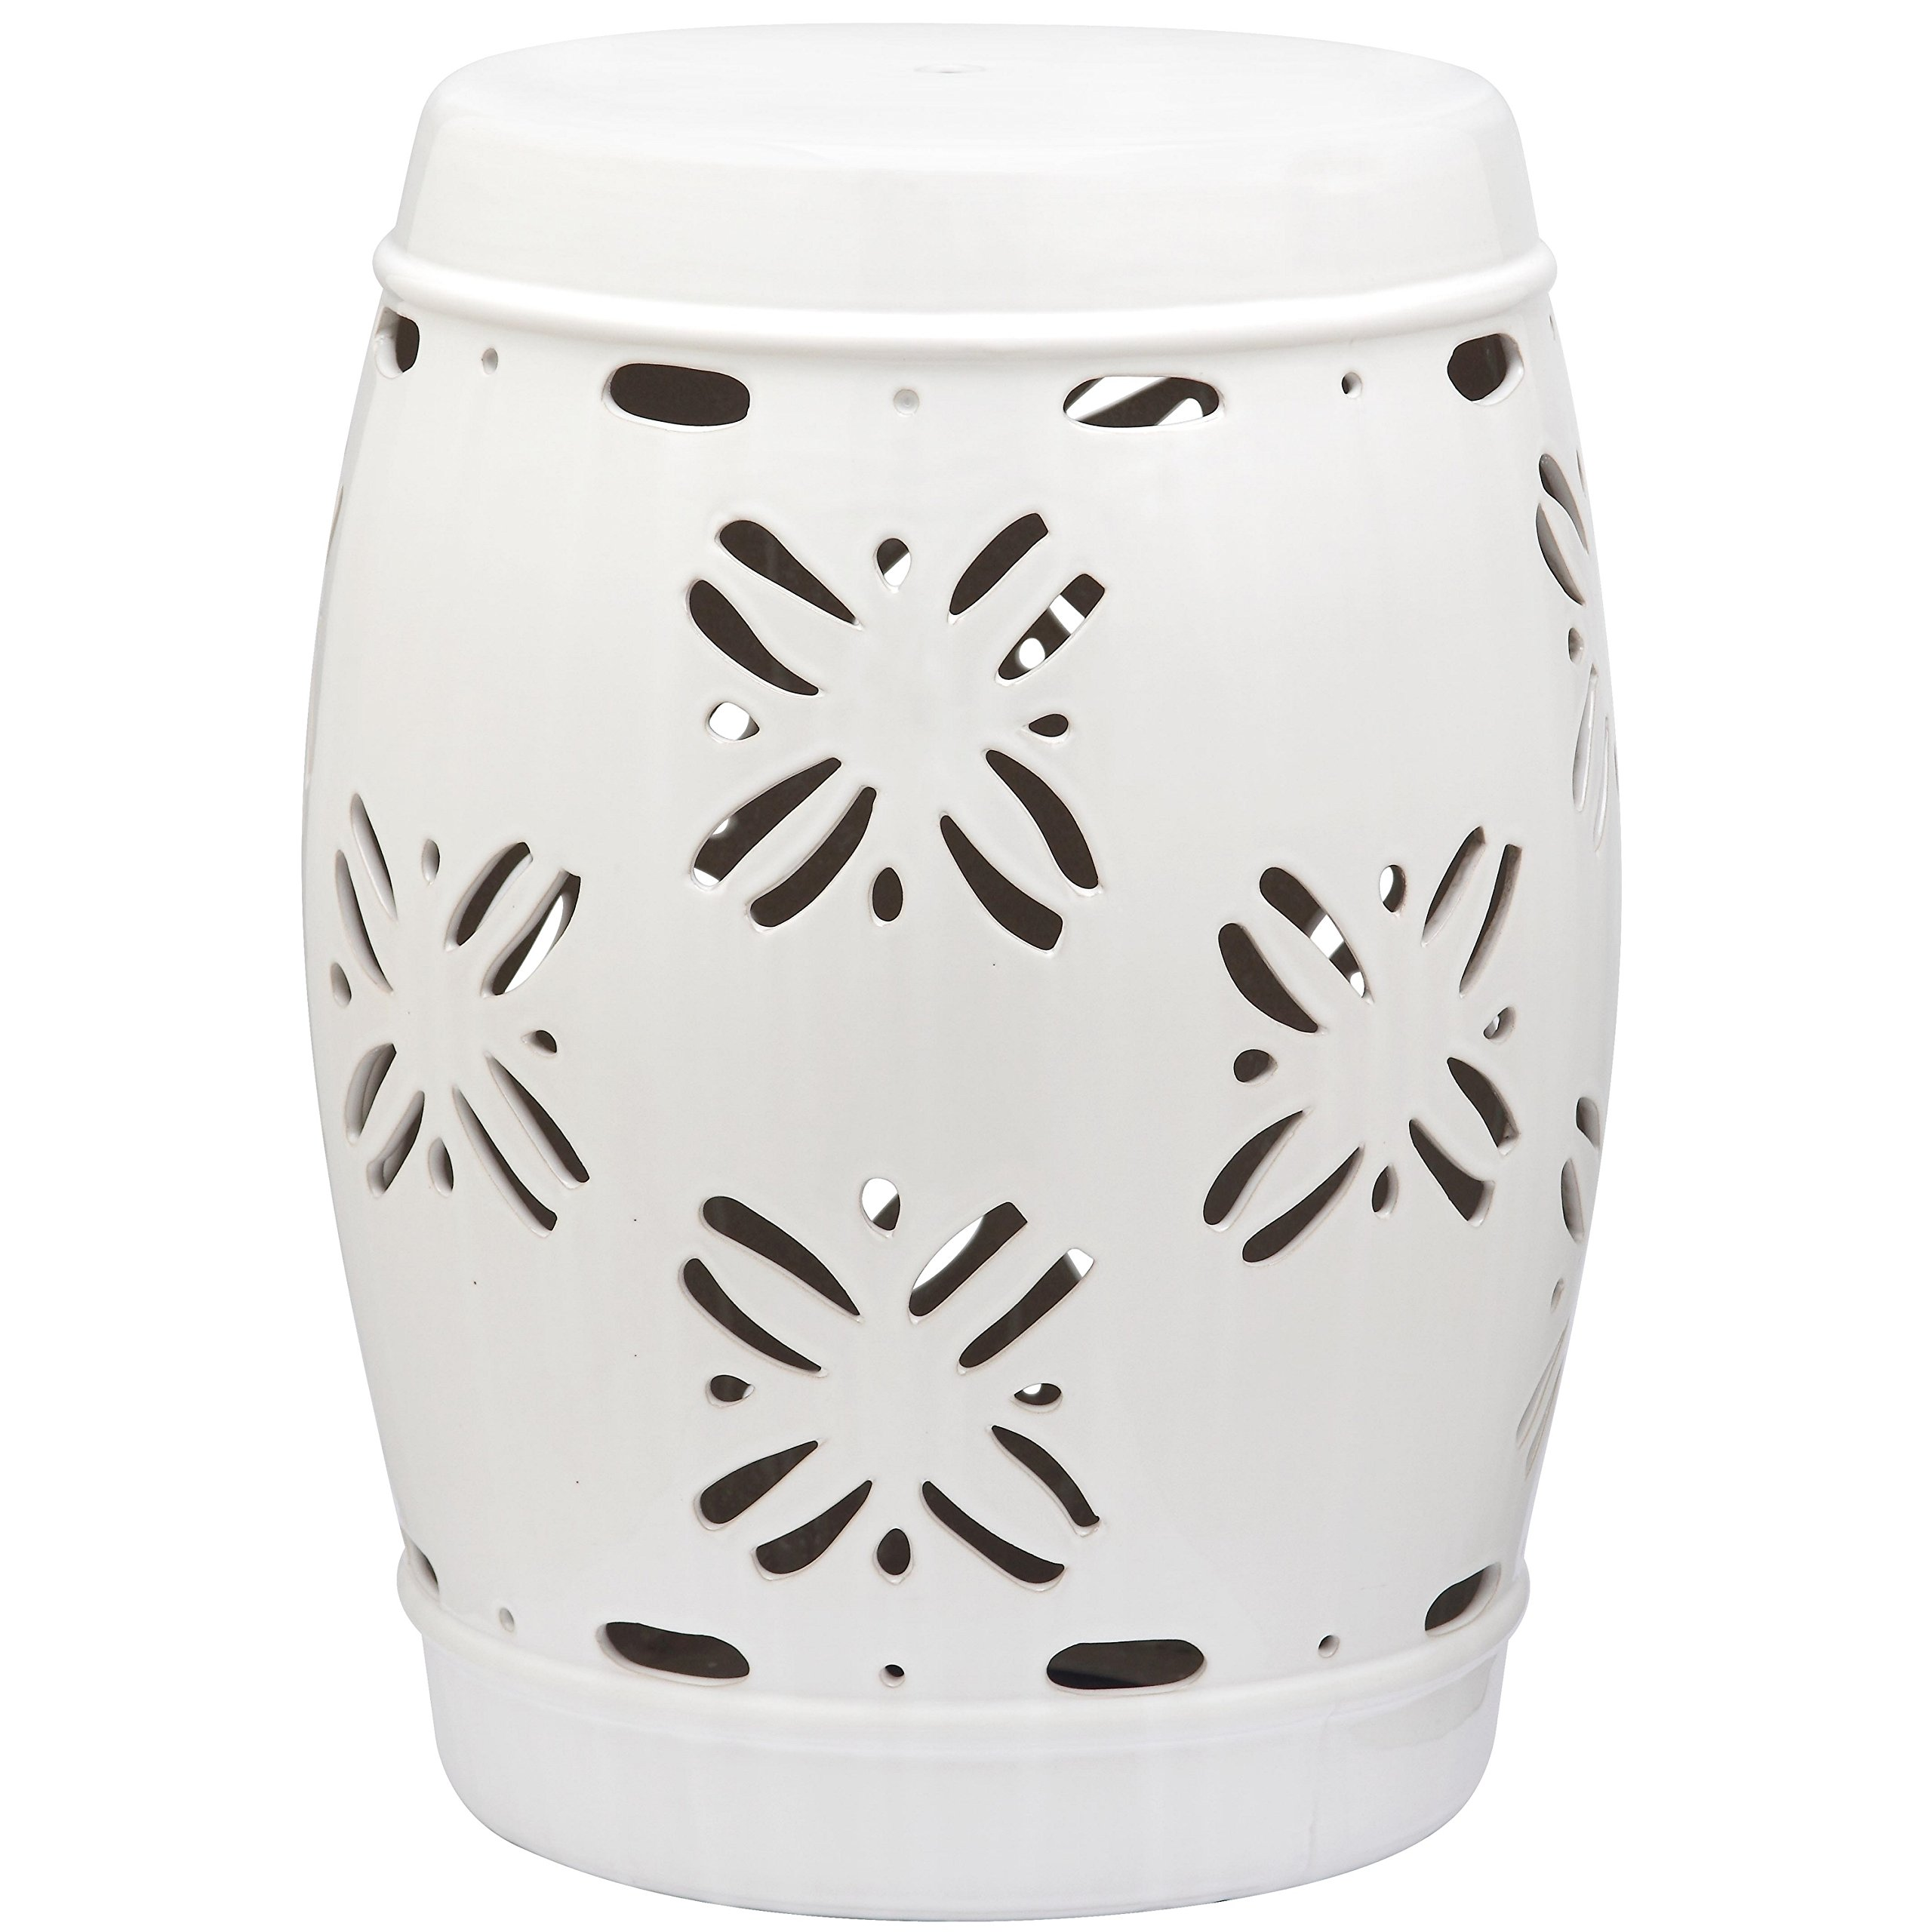 Safavieh Castle Gardens Collection Sakura White Glazed Ceramic Garden Stool